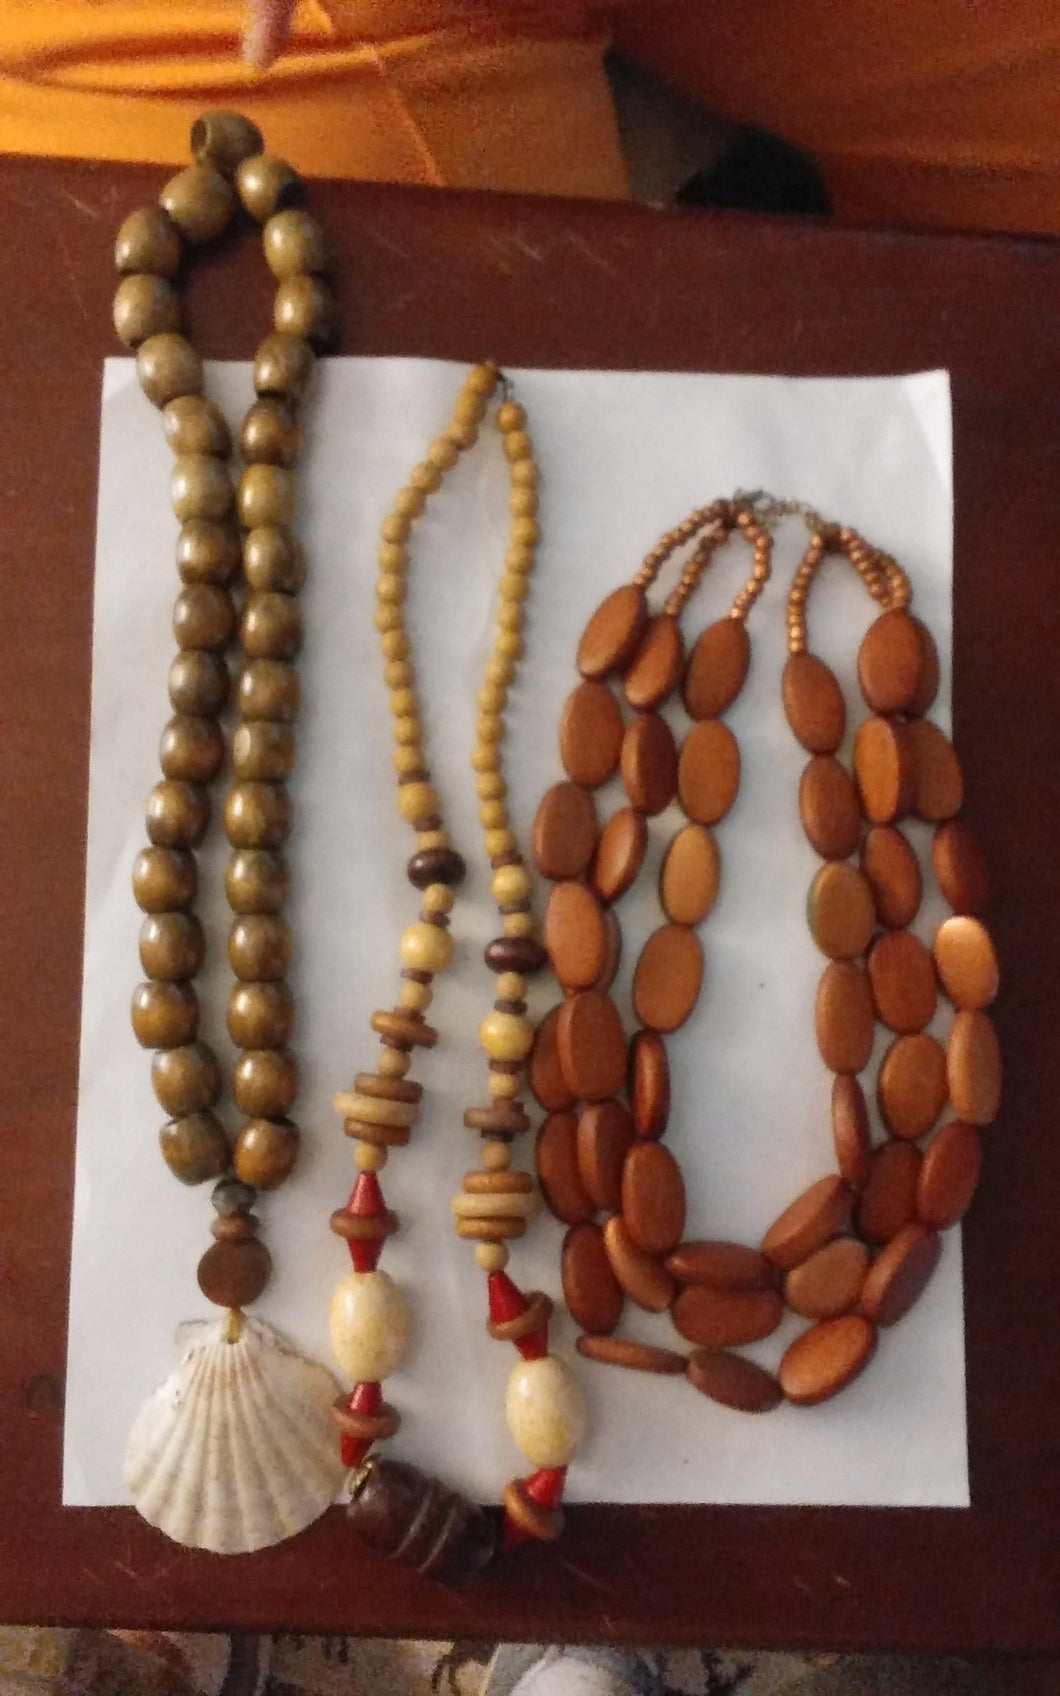 Wooden necklace lot - B&P'sringsnthings